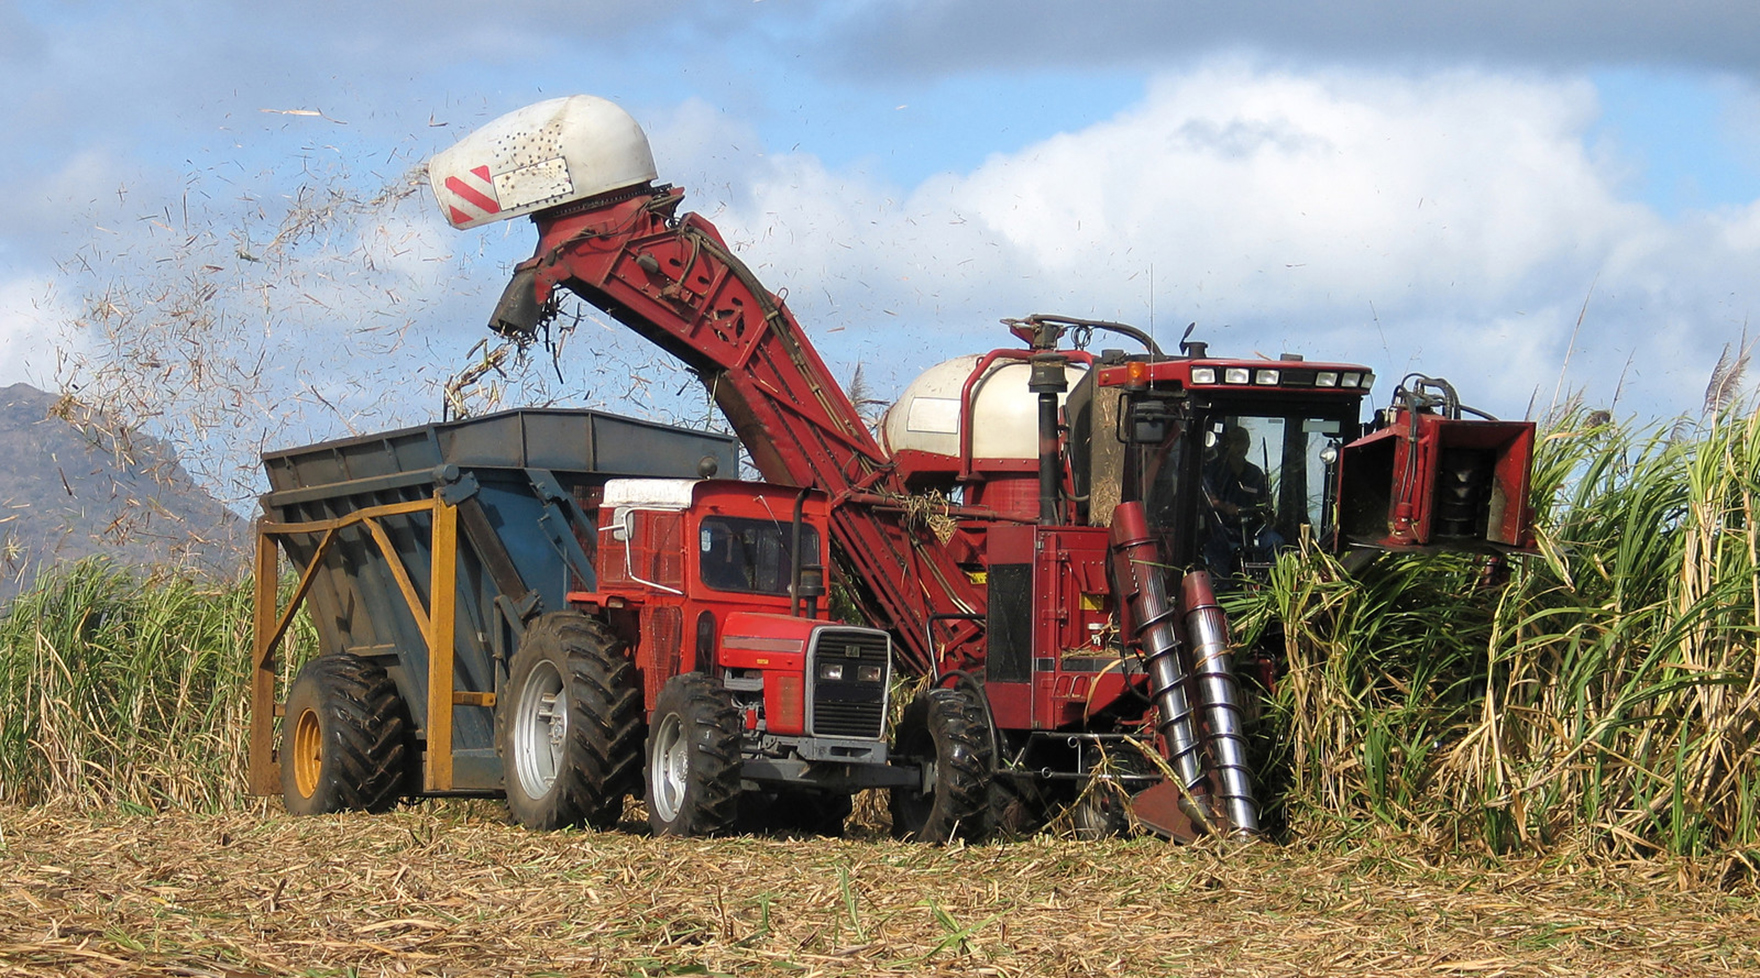 Spare-parts for Austoft Case IH Suger Cane Combines (Harvesters) and Massey Ferguson tractor spare parts.